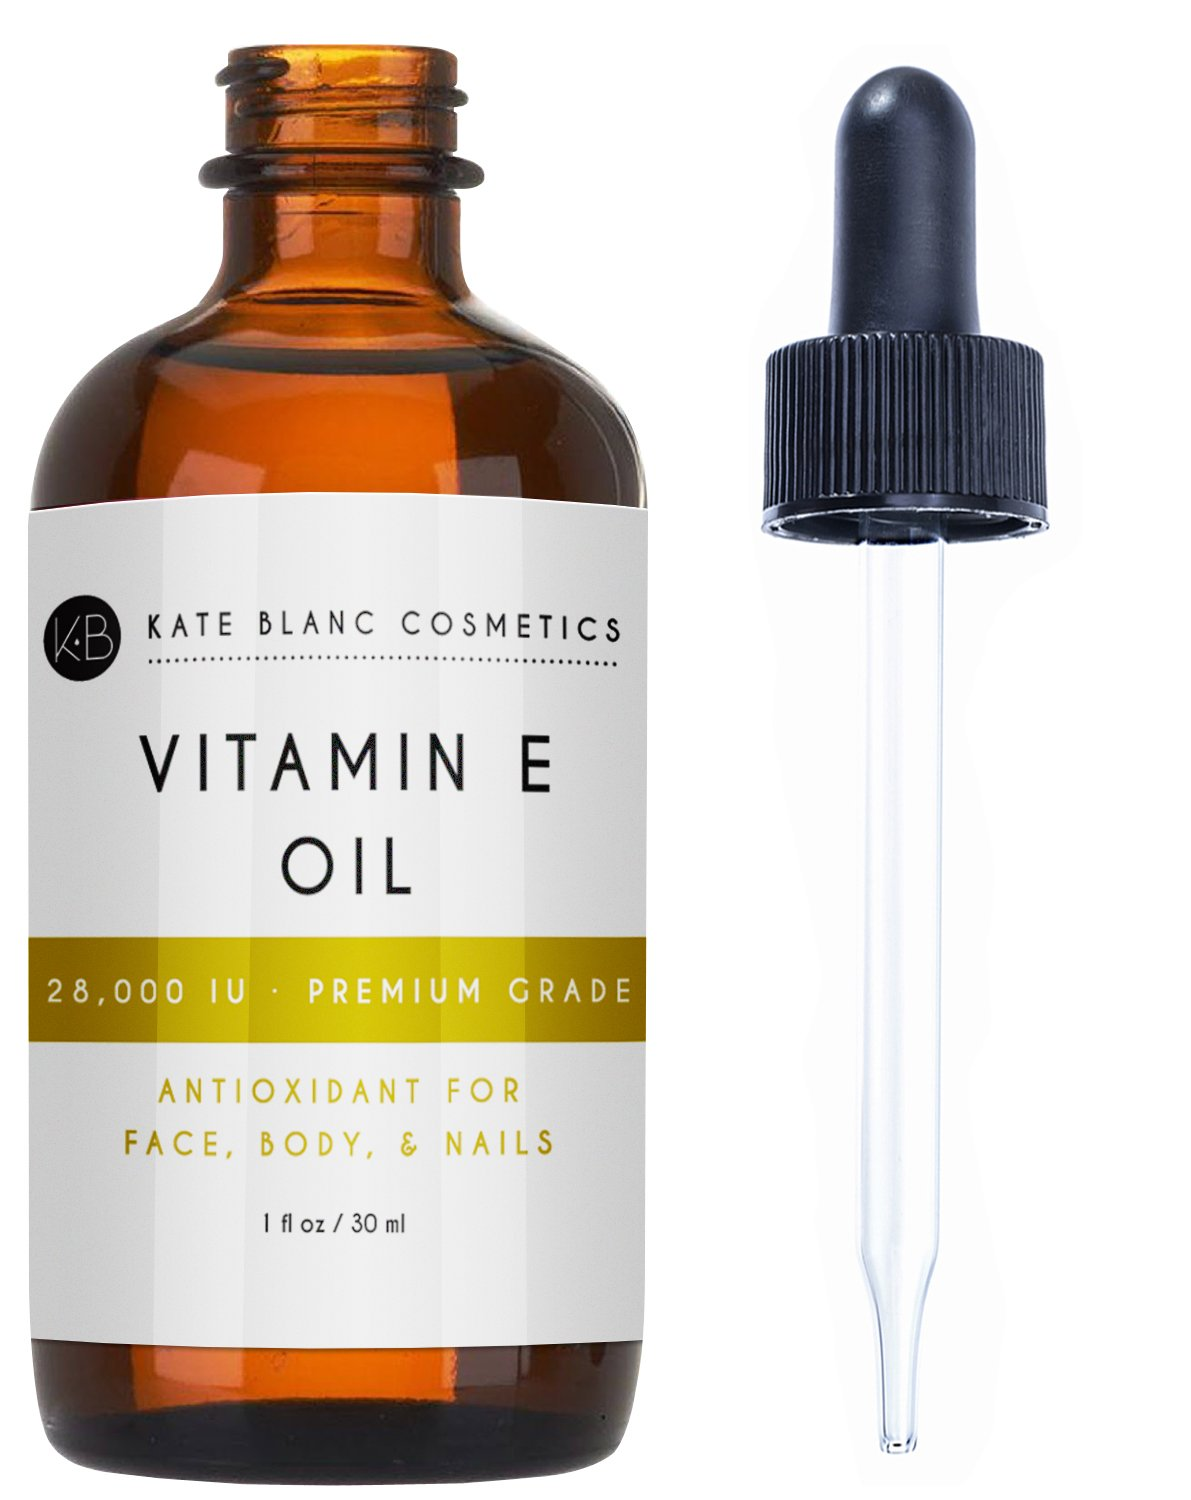 Vitamin E Oil by Kate Blanc. Moisturizes Face and Skin. Natural D-alpha Tocopherol. 100% Pure, Extra Strength. 30,000 IU. Reduce Appearance of Scars, Wrinkles, Dark Spots. 1-Year Warranty.